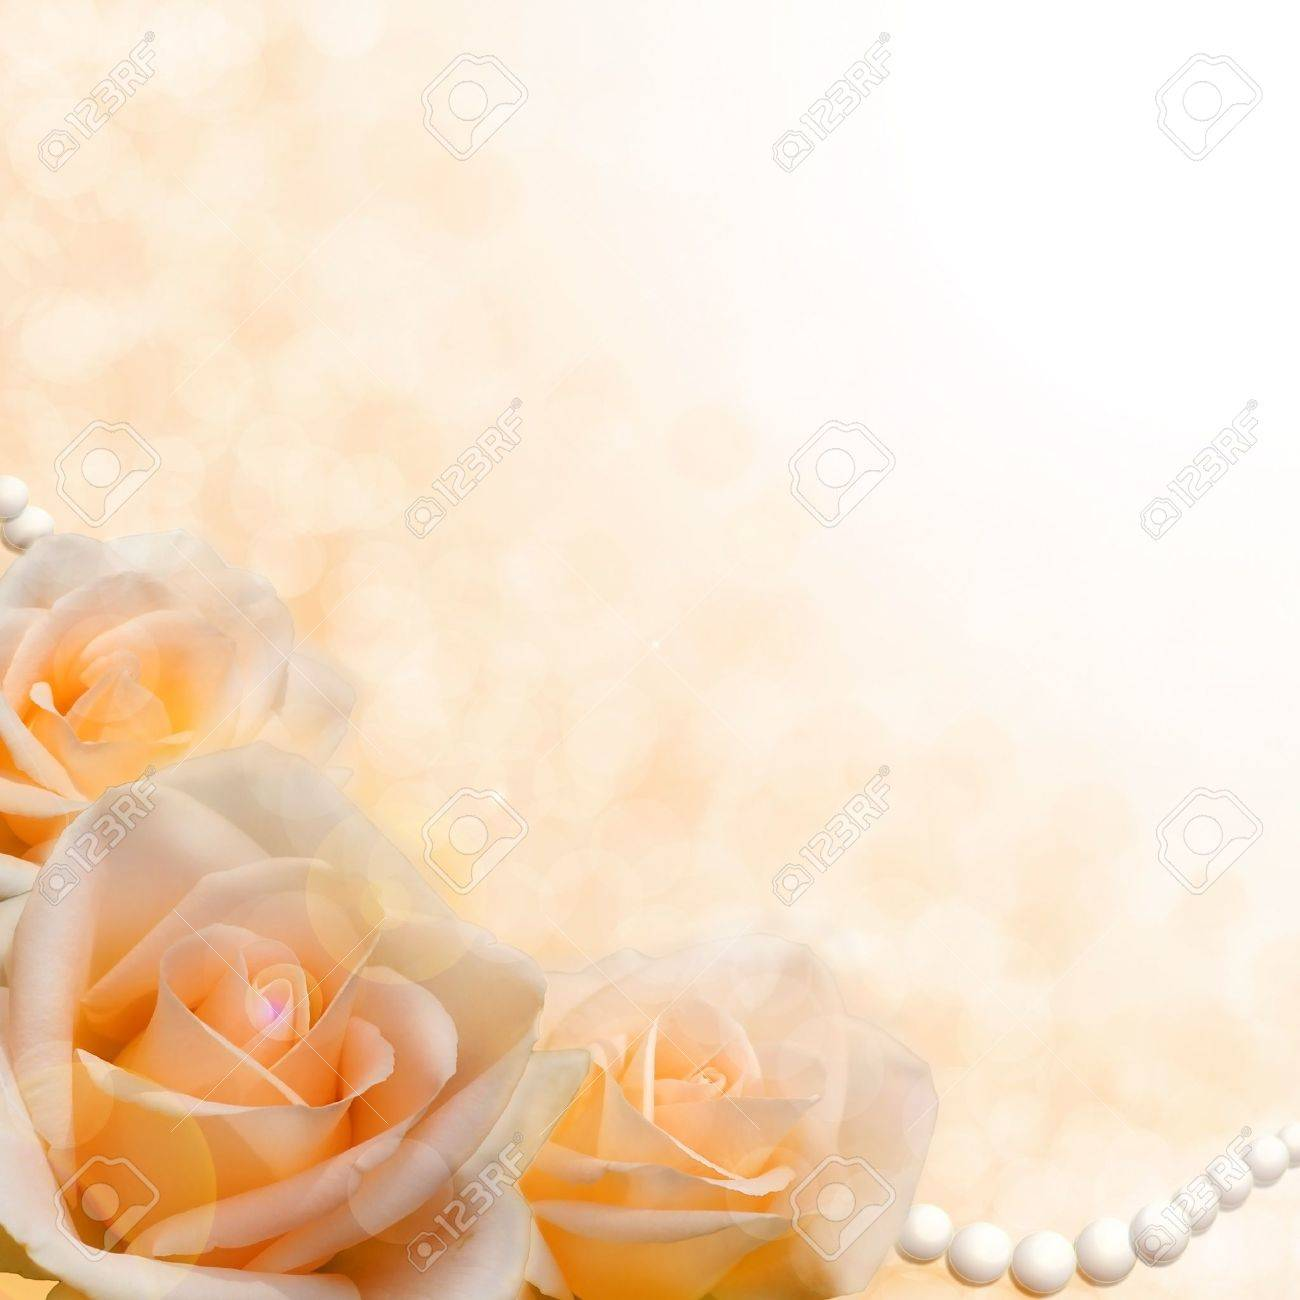 Beautiful Soft Cream Roses On Blurred Background As The Theme ...